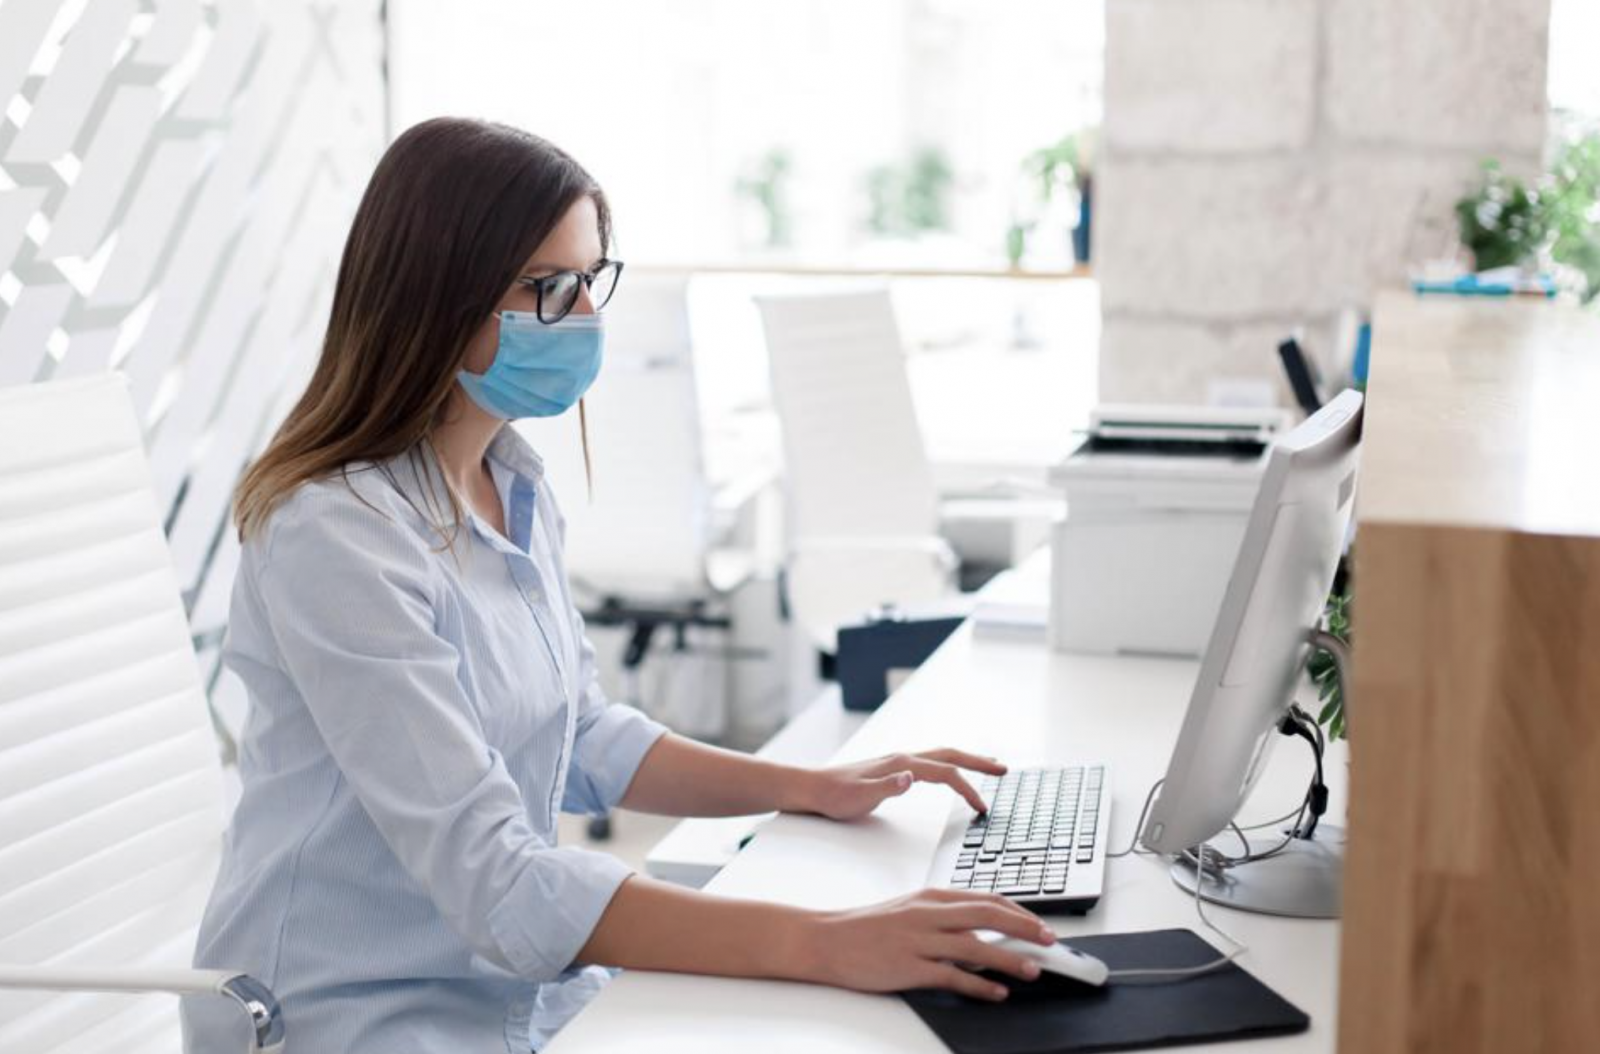 These Are The Most At-Risk Jobs Post-Pandemic